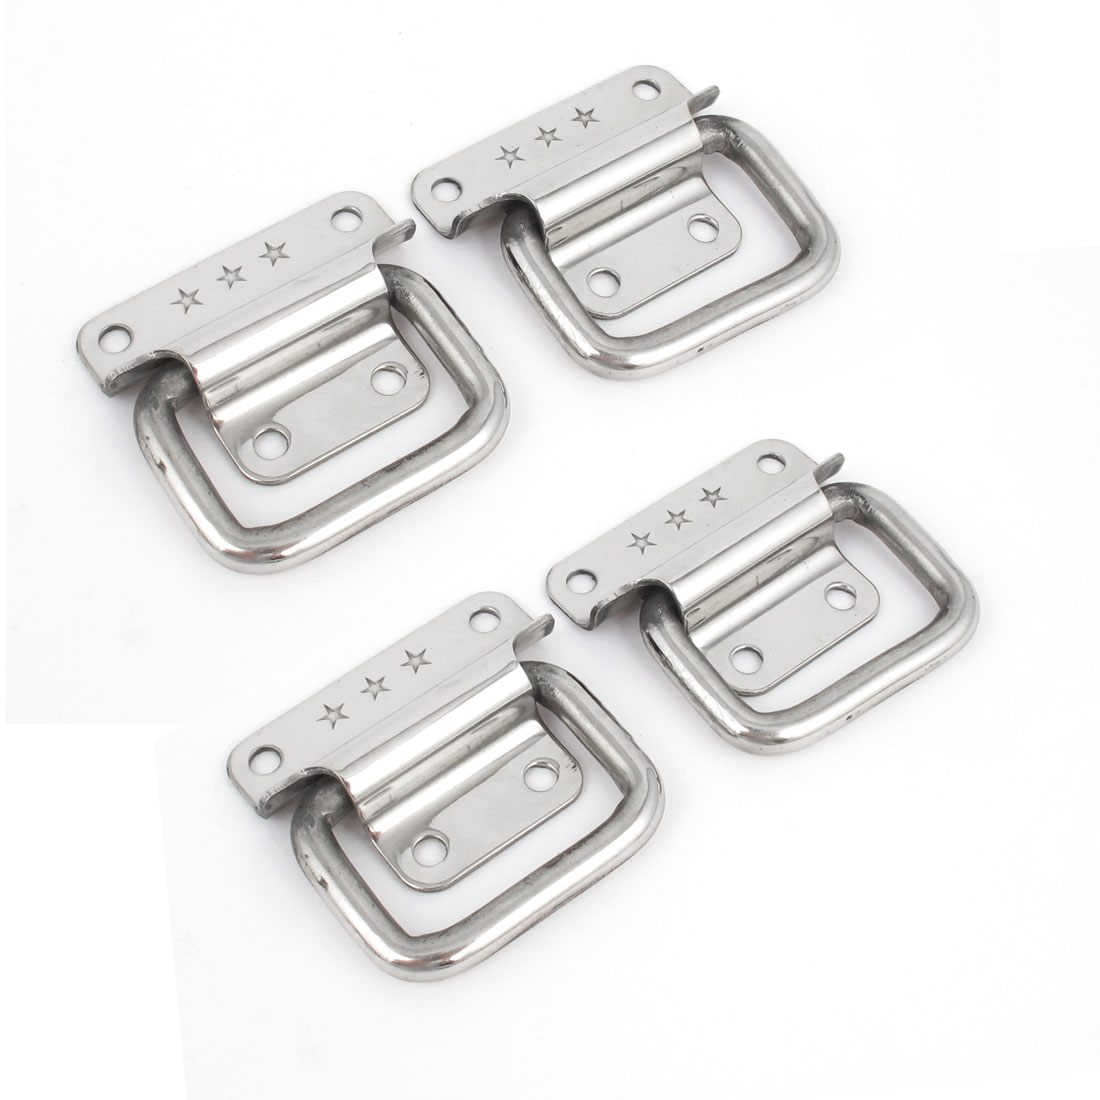 "4pcs Hardware Toolbox 2"" Puller Silver Tone Metal Chests Handle"